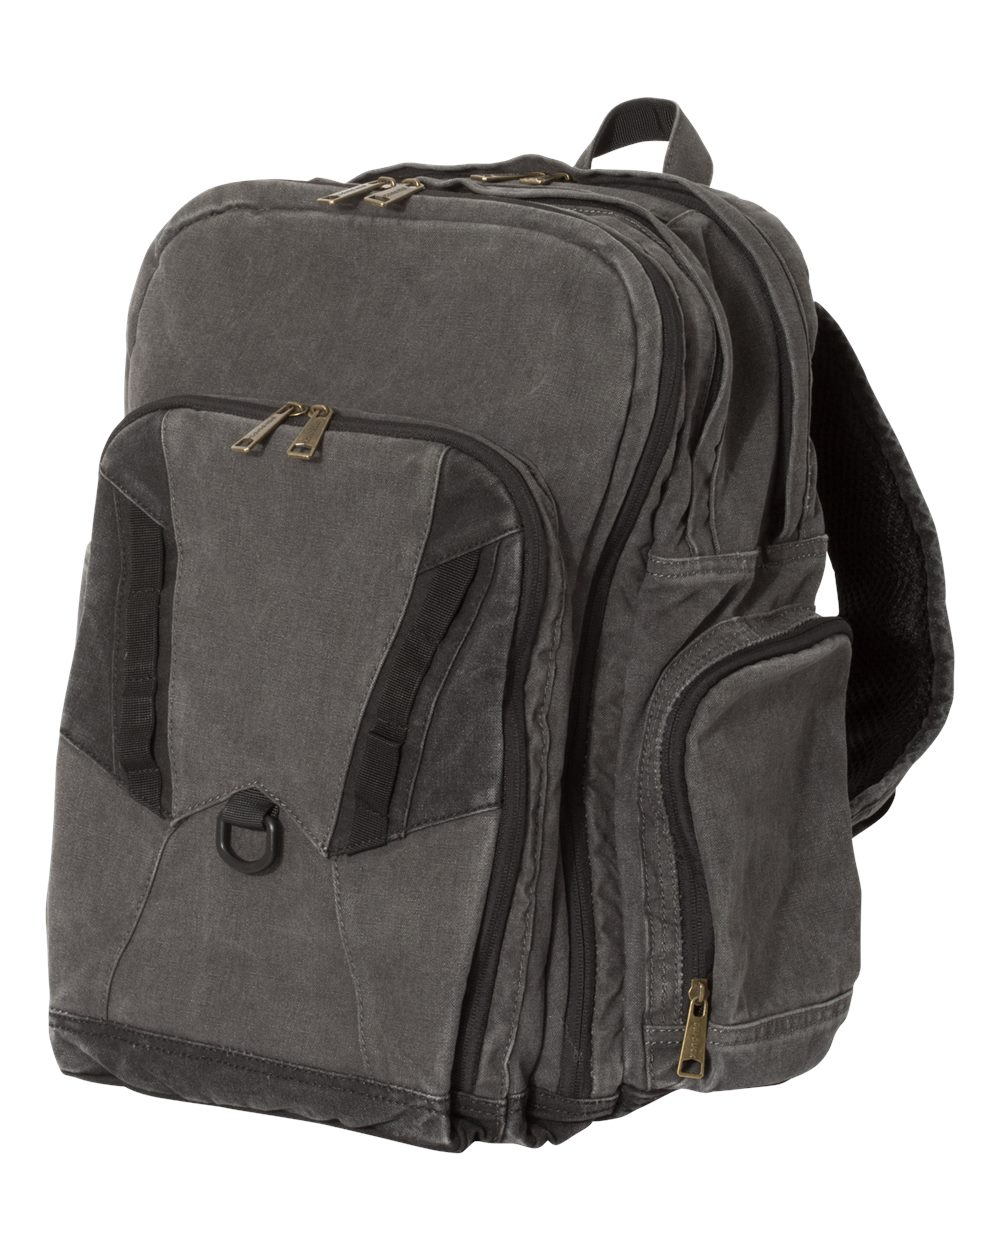 DRI DUCK 1039 - Traveler 32L Backpack